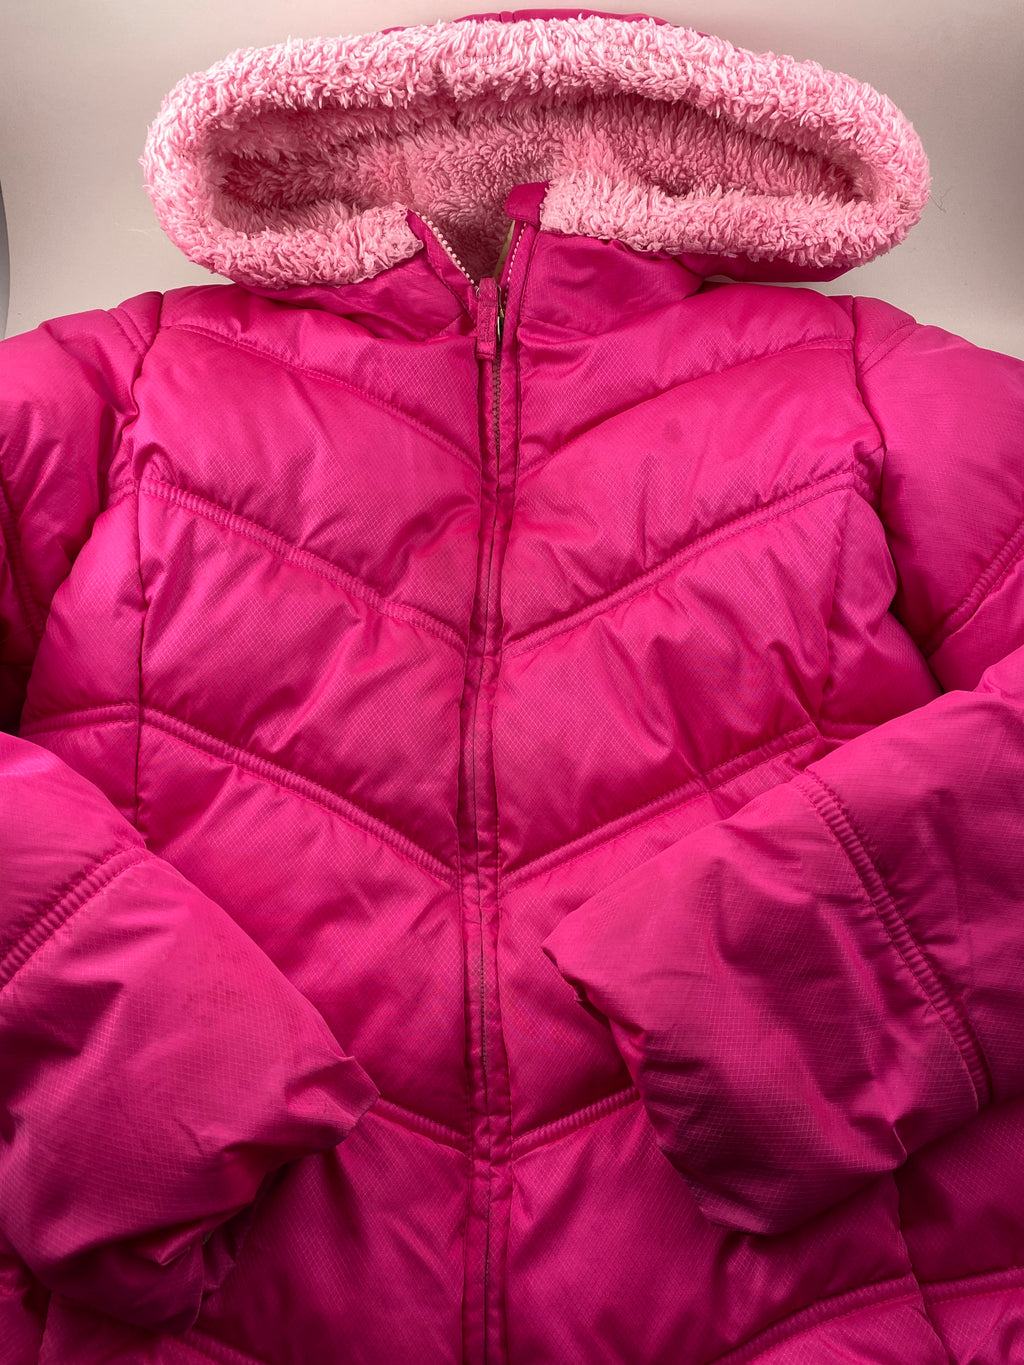 Girl's Outerwear - Size 10/12